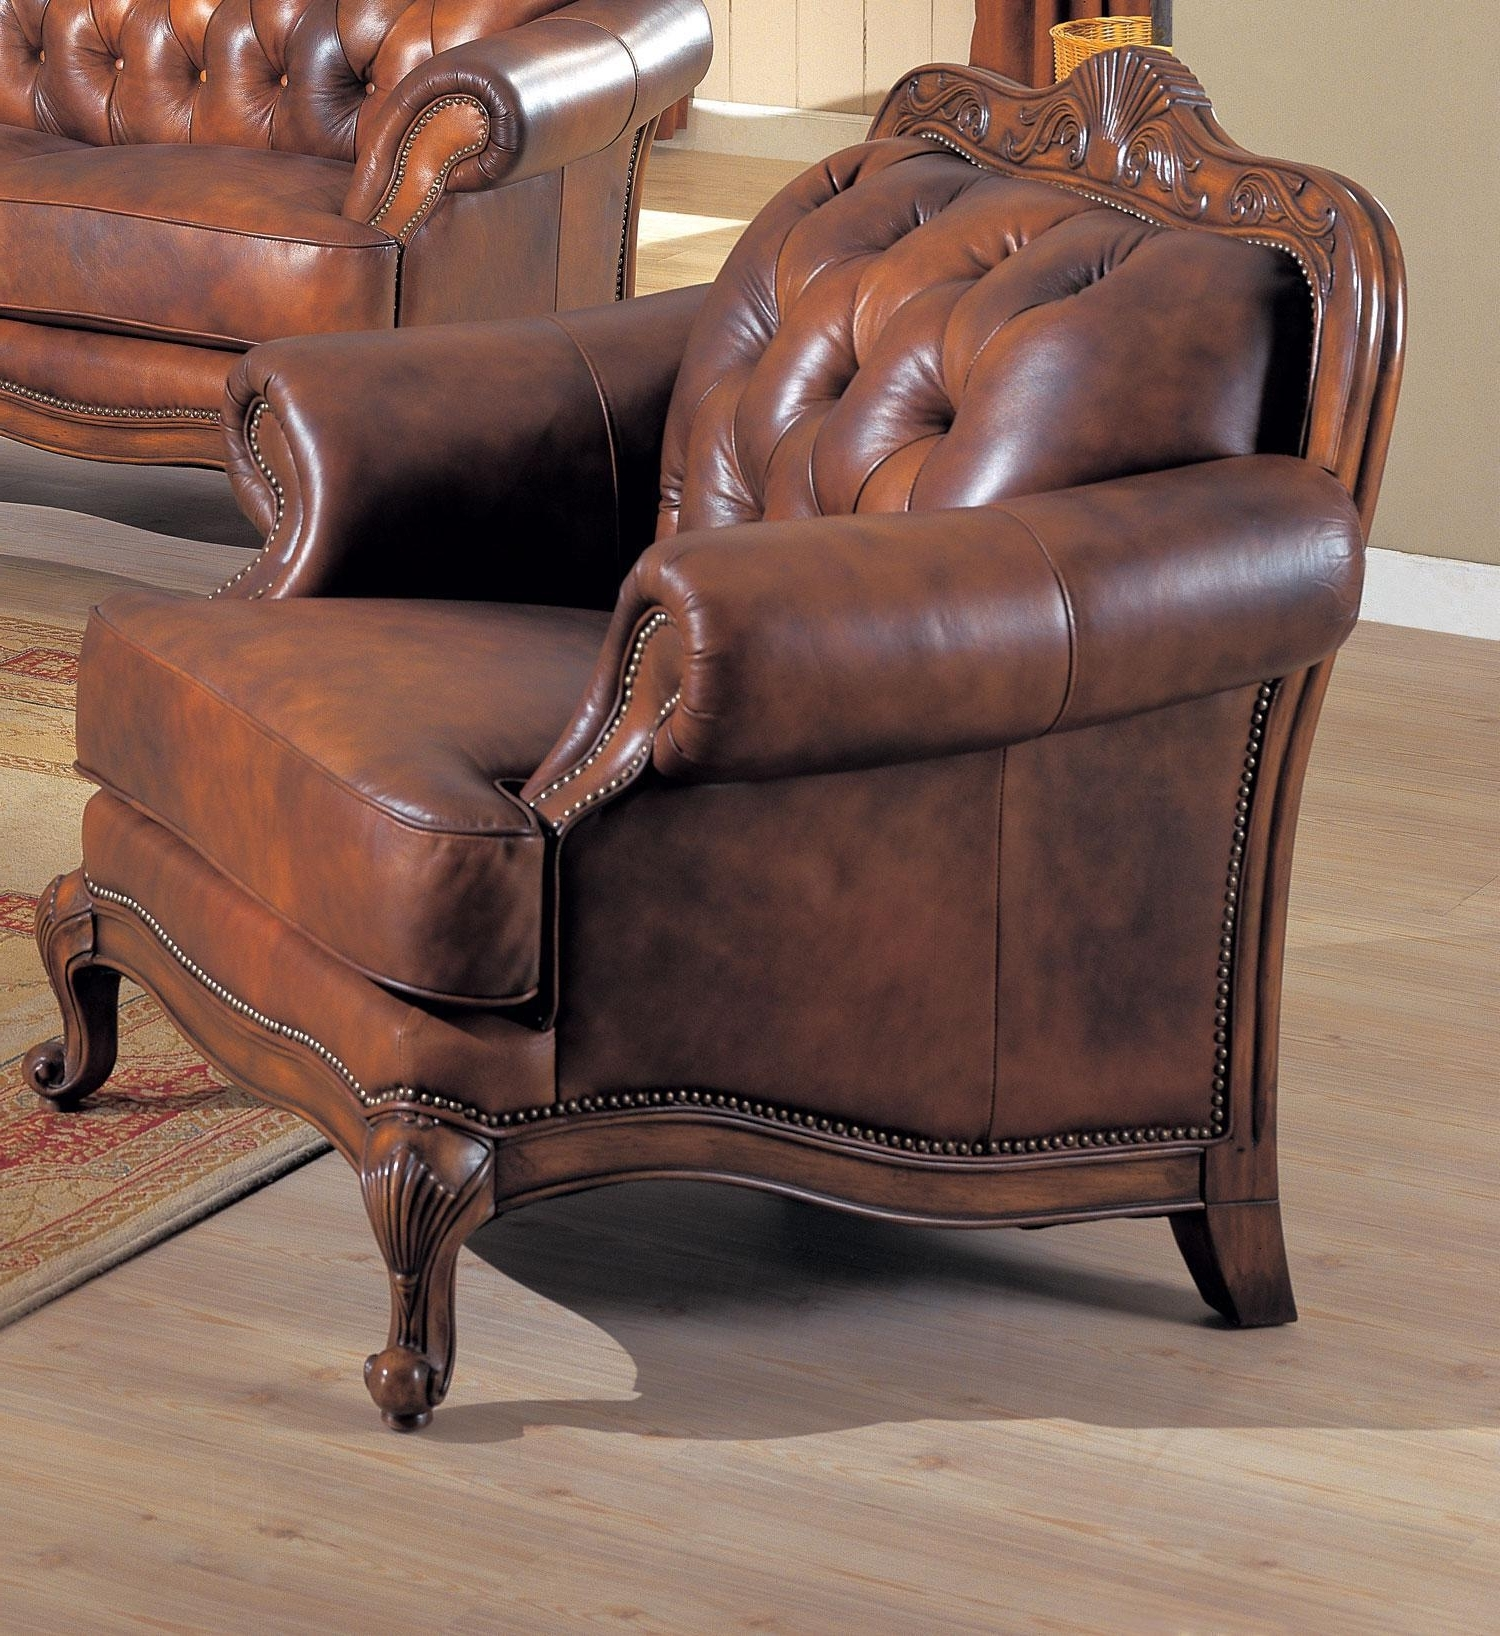 Victoria Sofa 500681 Coaster Furniture Leather Sofas At Comfyco within Popular Victorian Leather Sofas